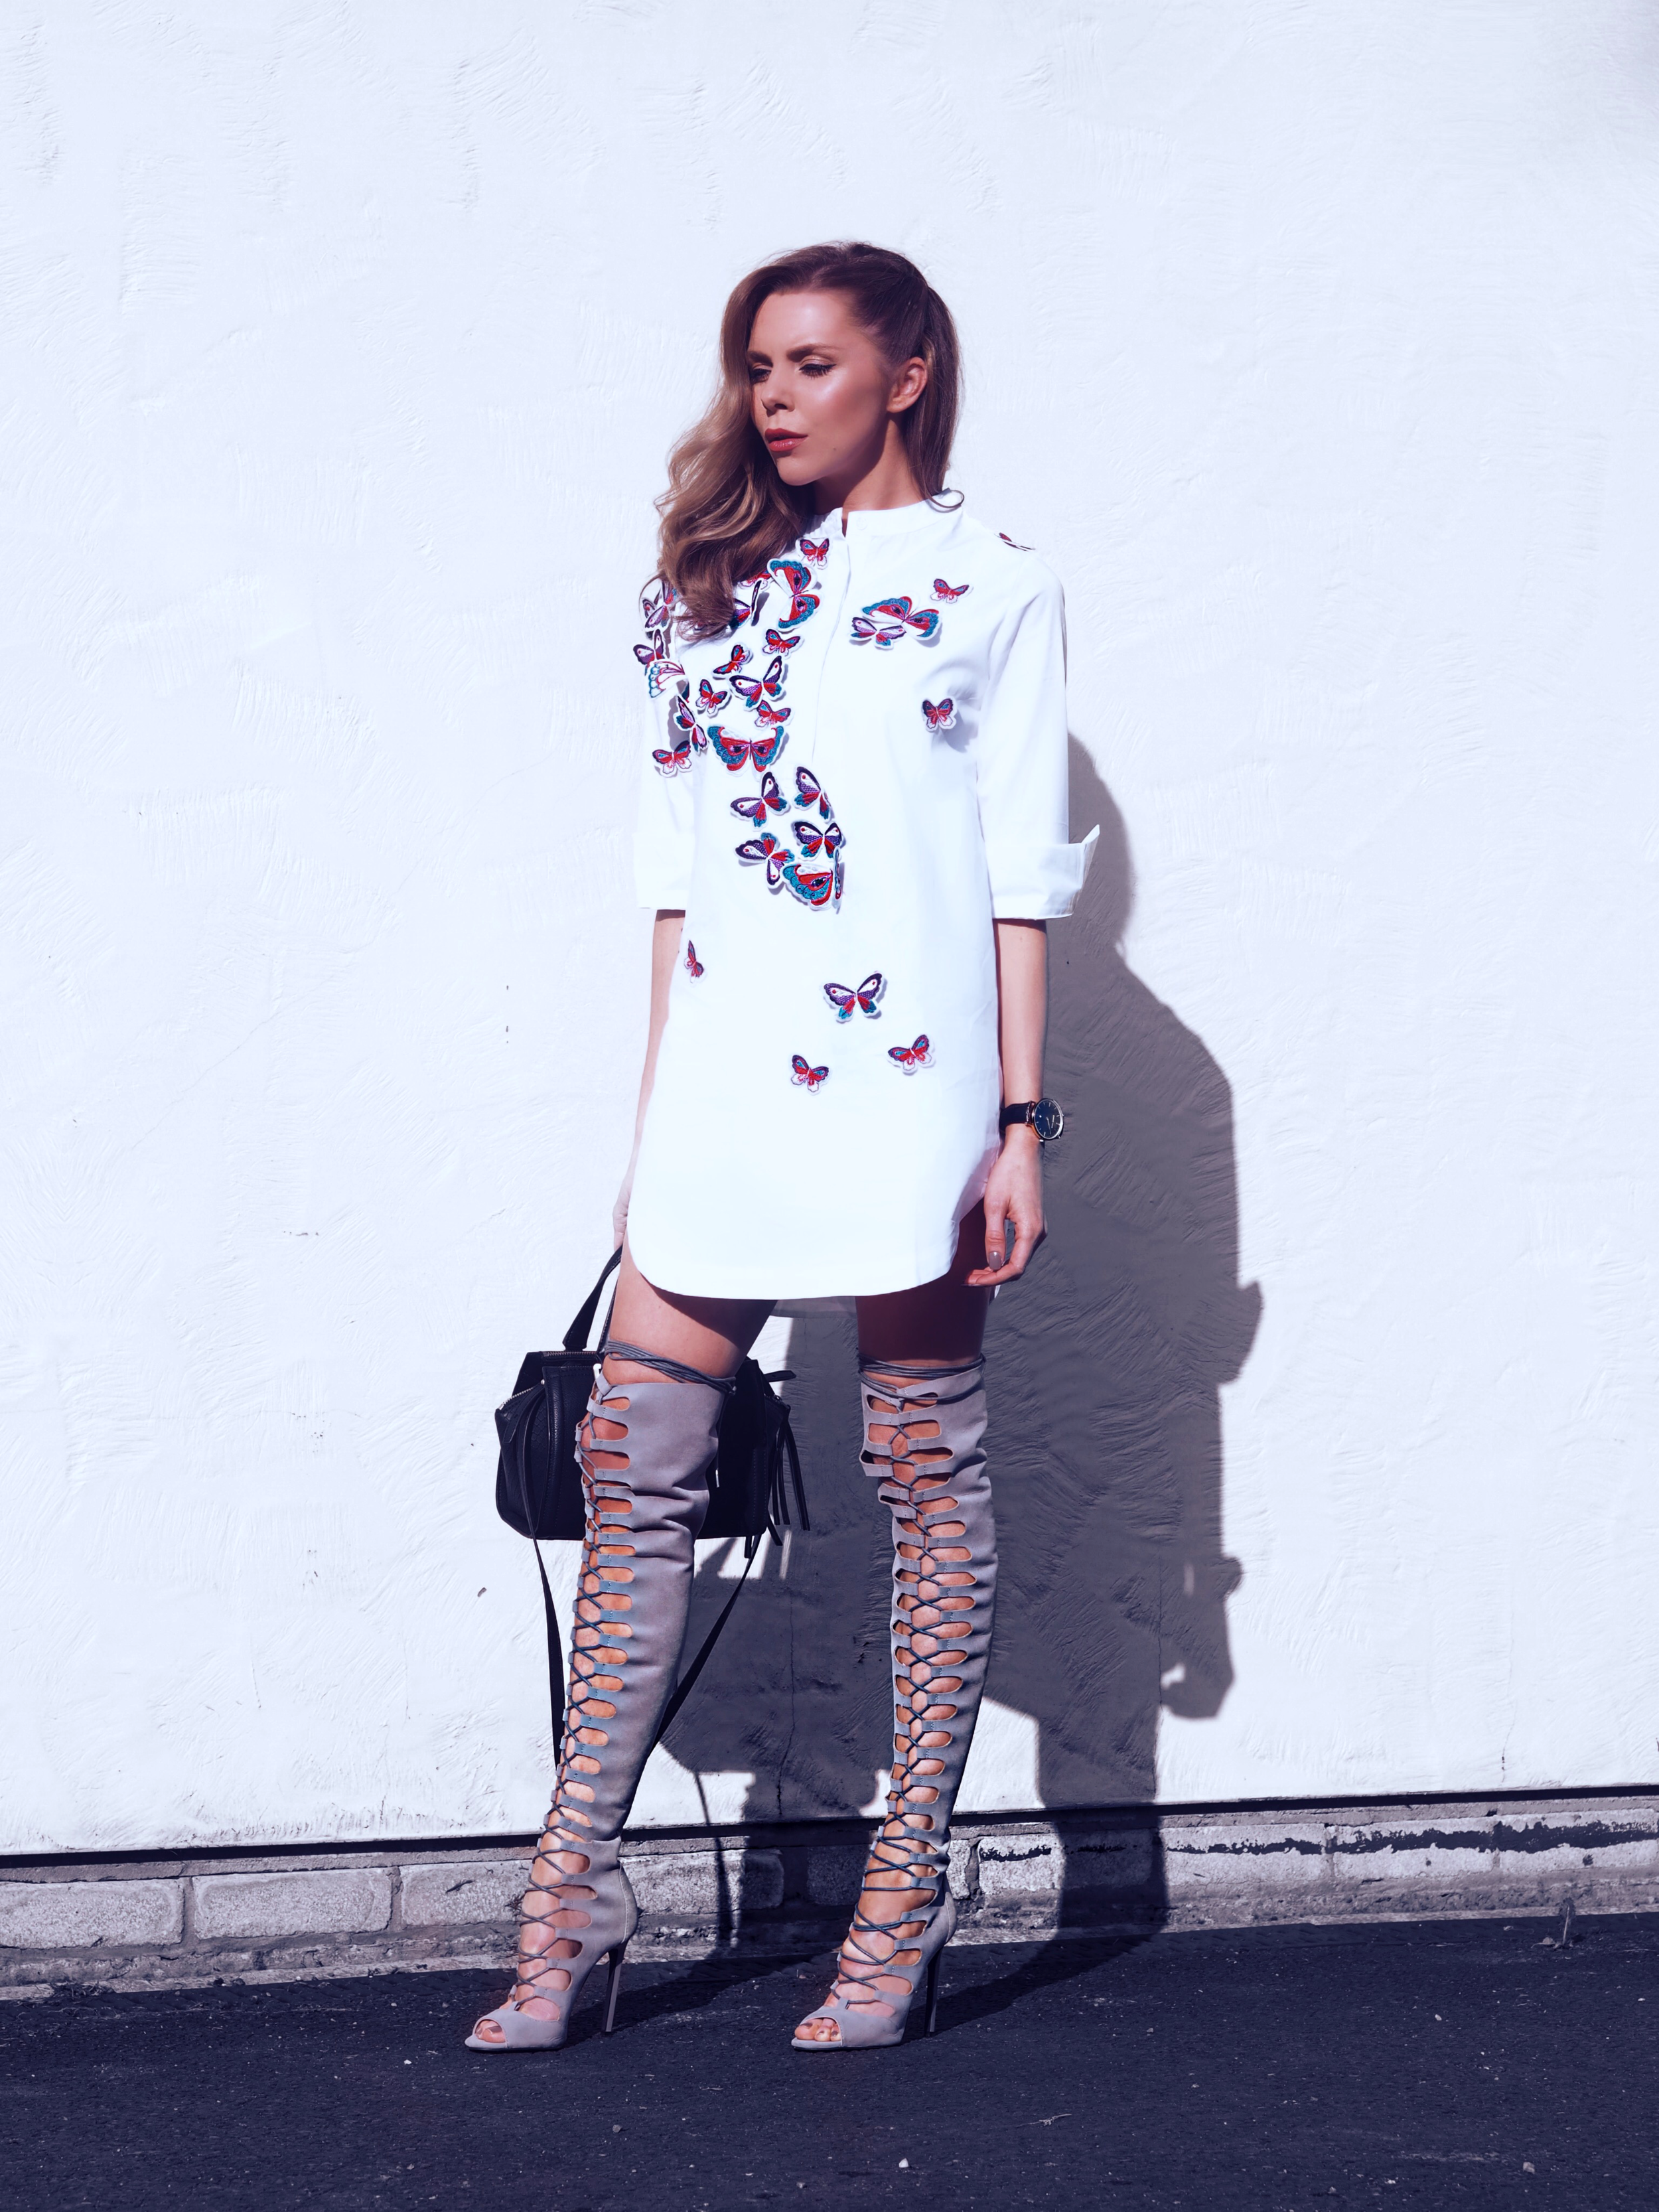 SHIRT DRESS HOW TO STYLE SHIRTS OVER THE KNEE BOOTS LAURA BLAIR LONDON FASHION GIRL